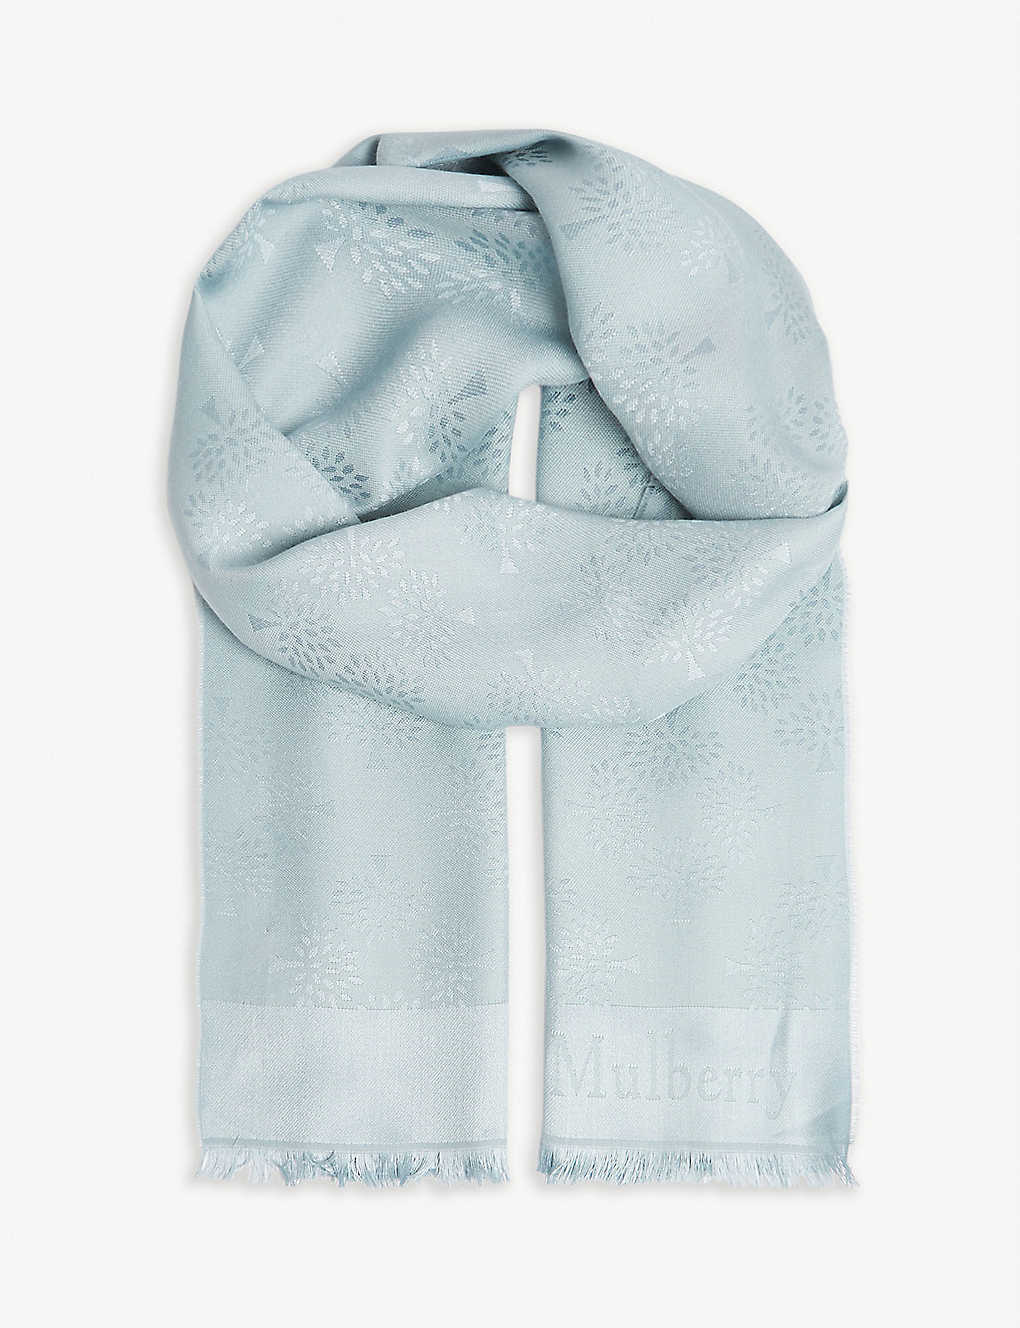 Silk and cotton scarf - Cloudy grey Mulberry Selfridges